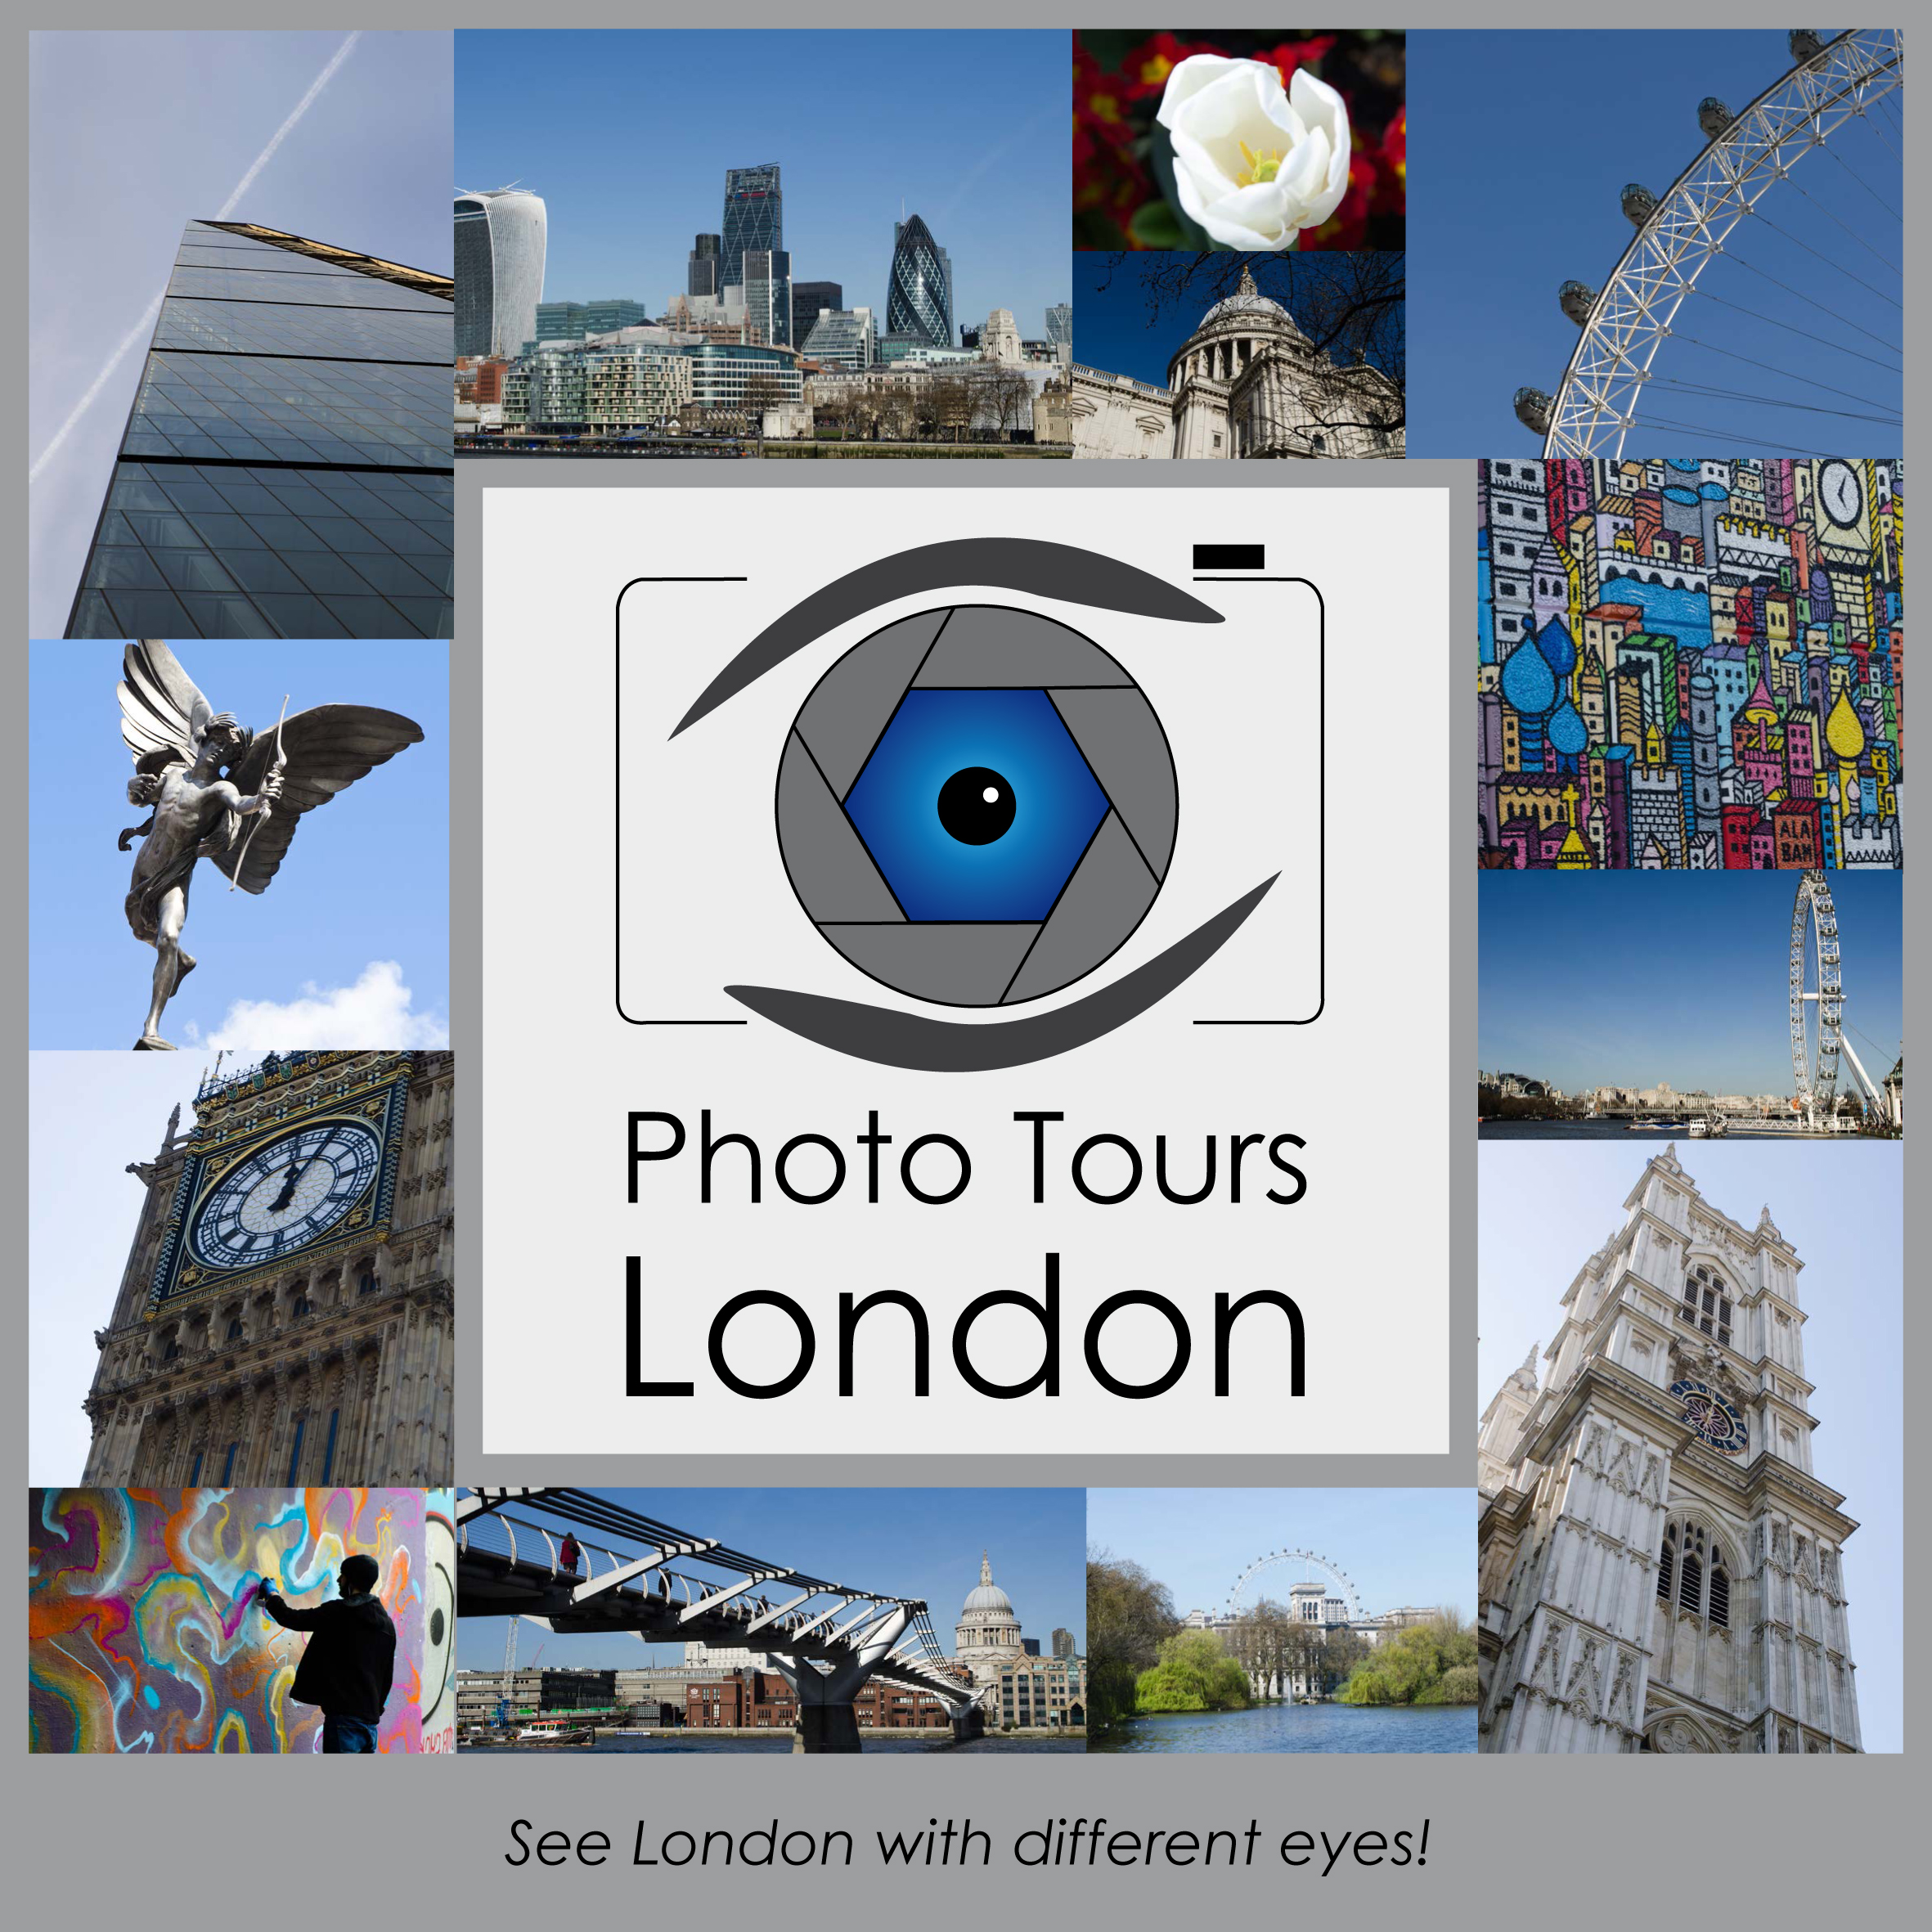 Photo Tours London